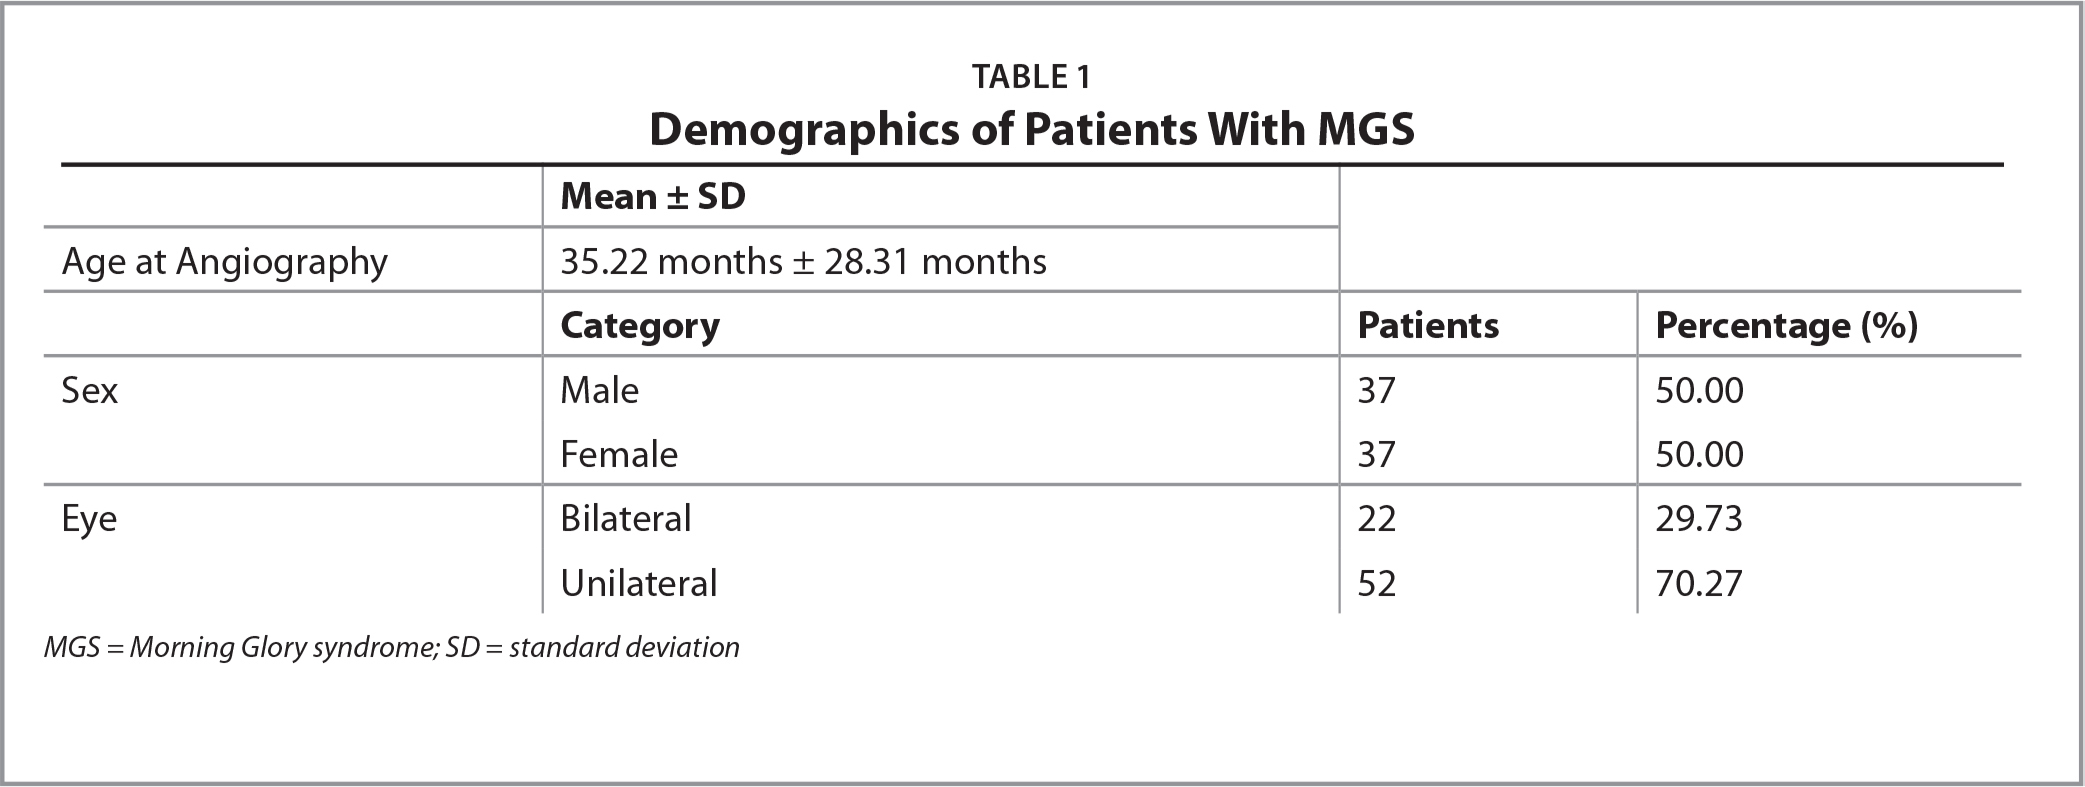 Demographics of Patients With MGS